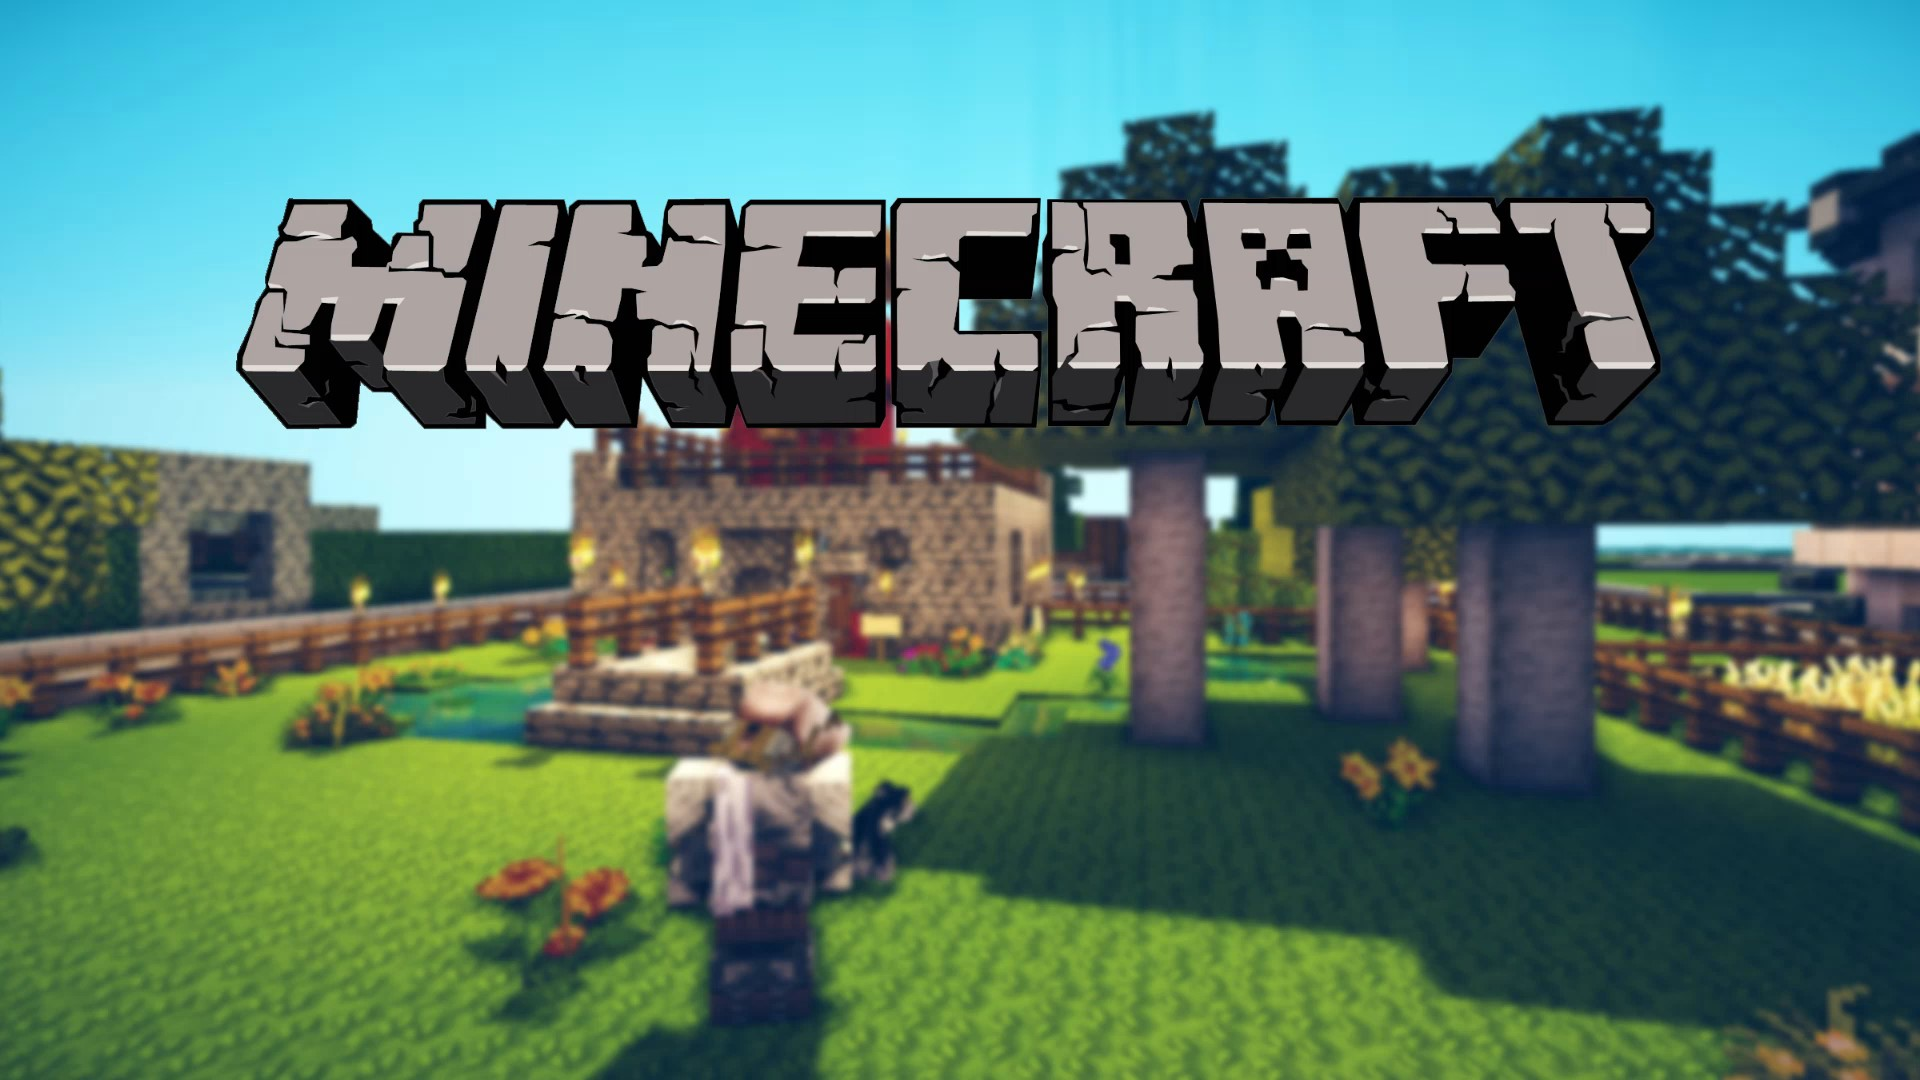 Minecraft HD Wallpaper · Minecraft HD Wallpaper ...